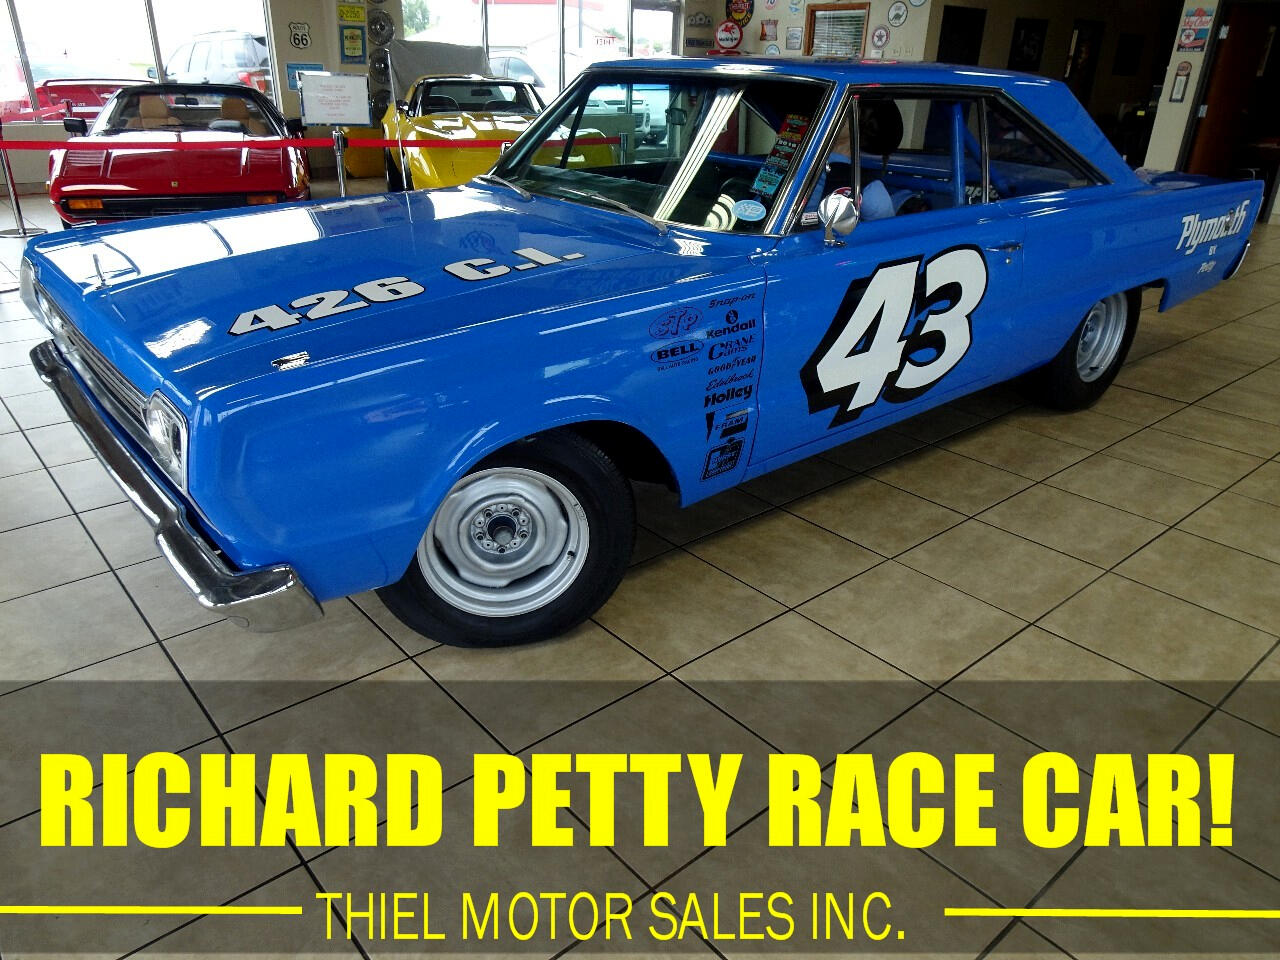 1967 Plymouth Belvedere Richard Petty Race Car